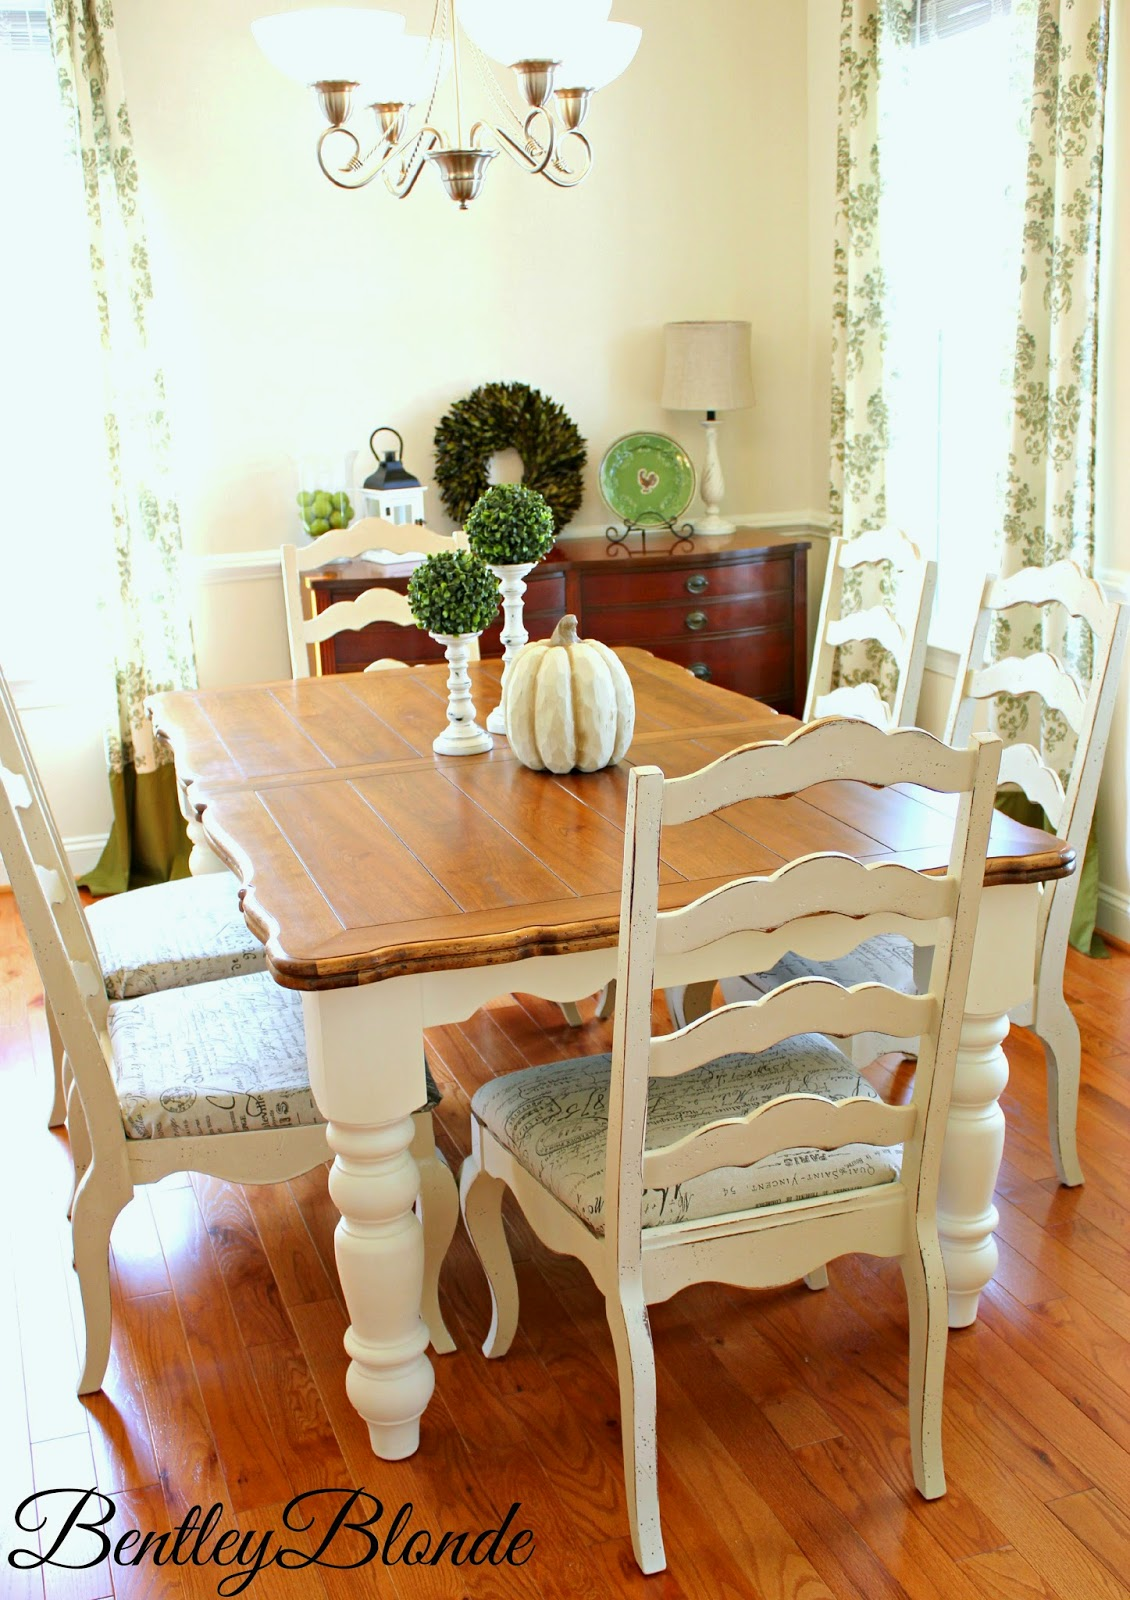 bentleyblonde: diy farmhouse table & dining set makeover with